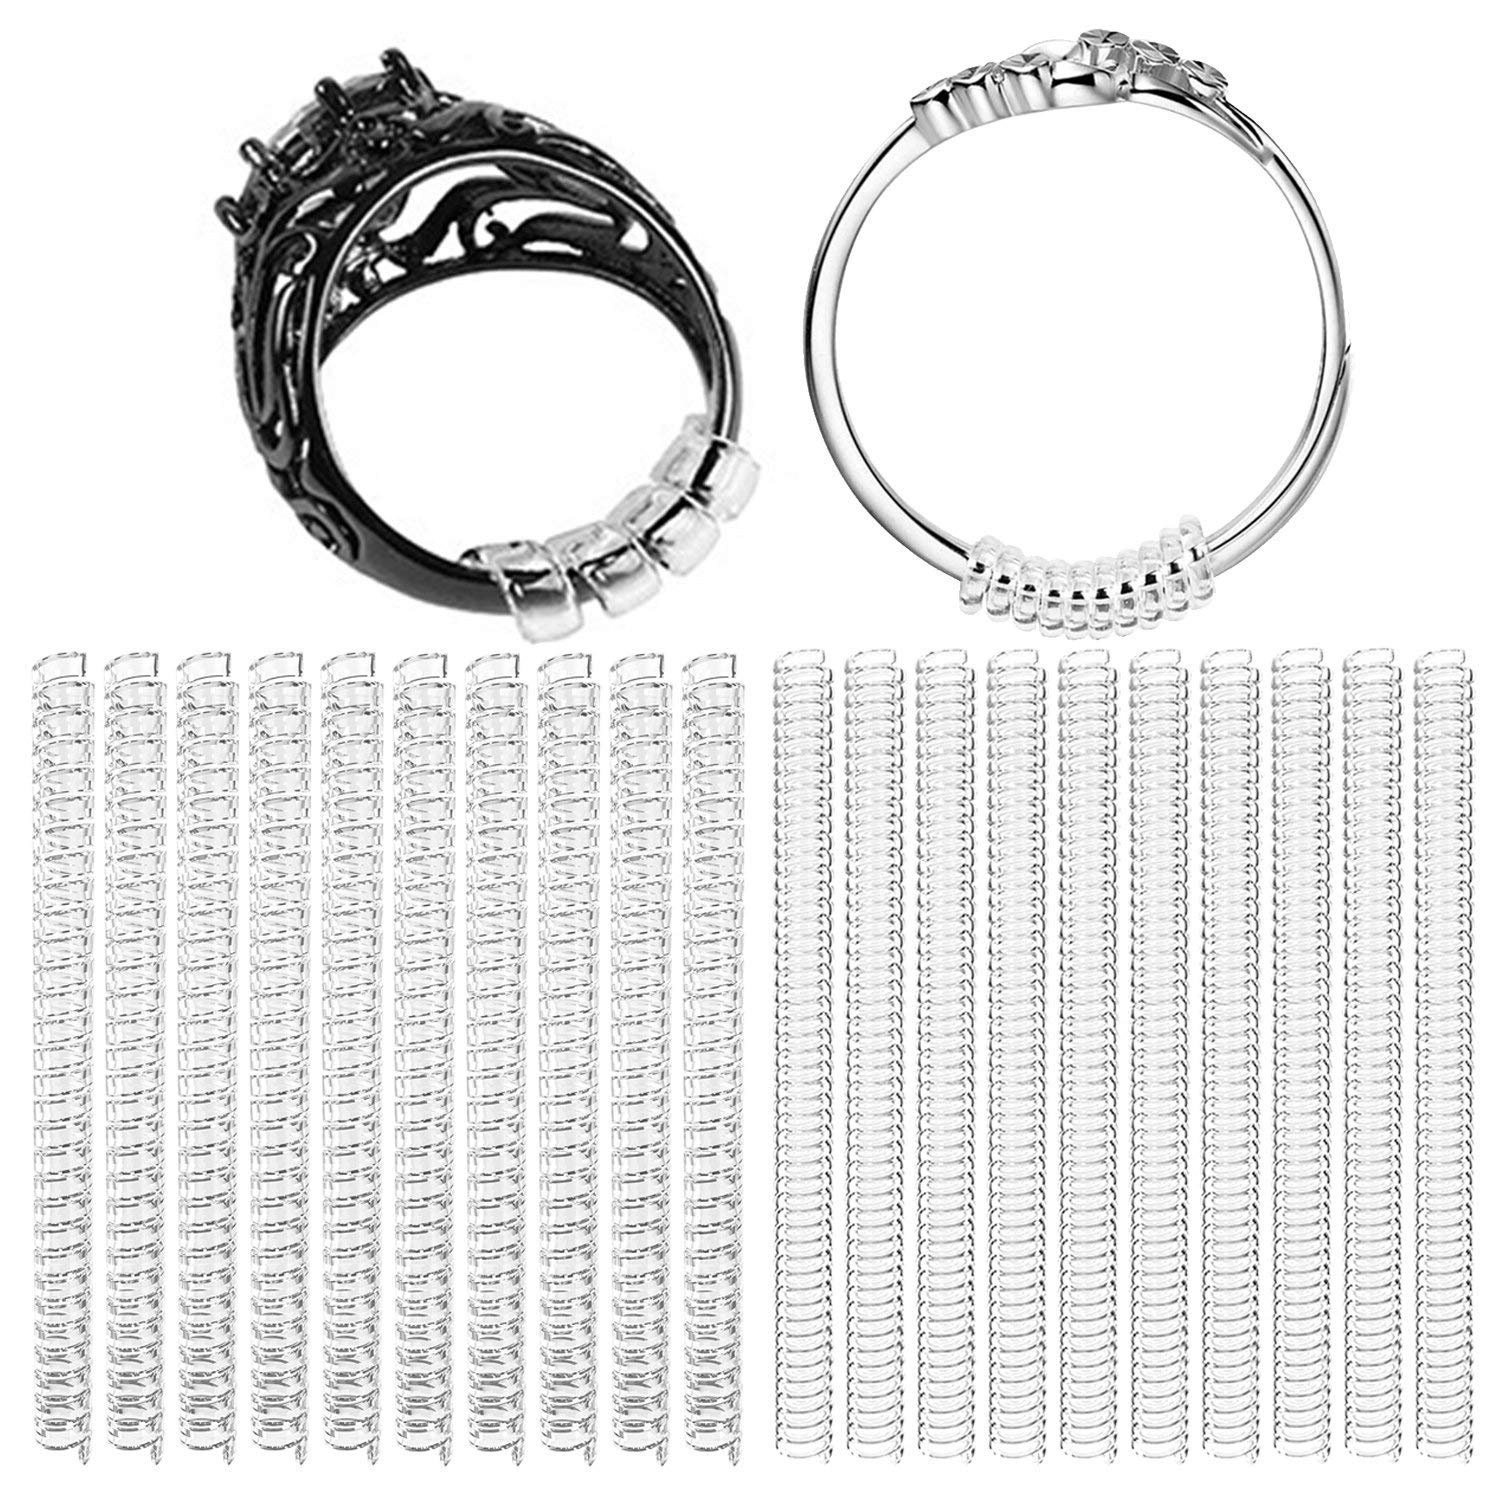 Set of 20(2mm/3mm) Size Adjuster Ring Spacer Ring Stopper Ring Size Adjuster with Jewelry Polishing Cloth-Plastic Ring Guard Ring Adjuster Perfect for Loose Rings YHmall